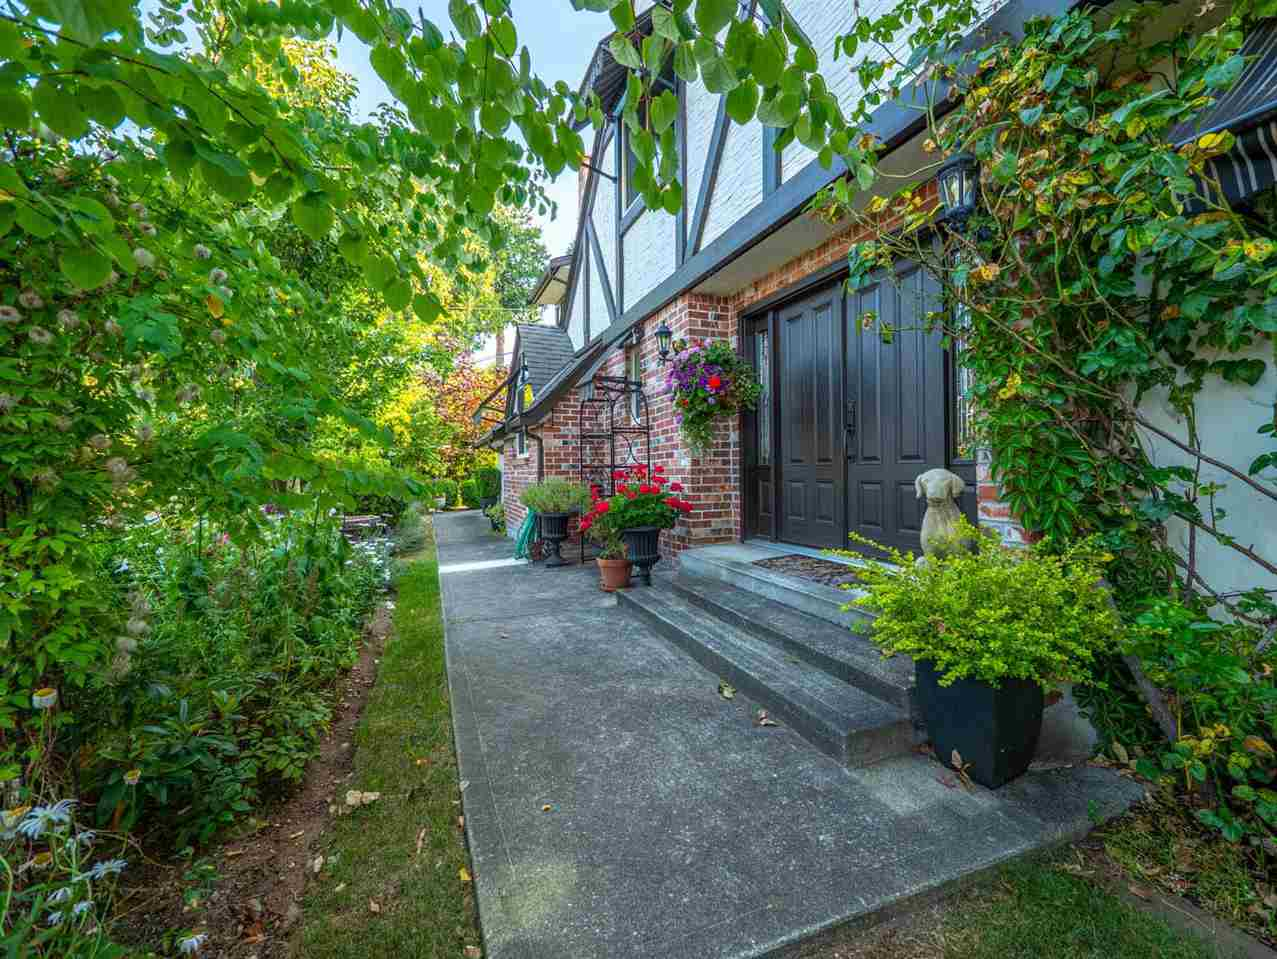 Main Photo: 5099 BAY Road in Sechelt: Sechelt District House for sale (Sunshine Coast)  : MLS®# R2293675